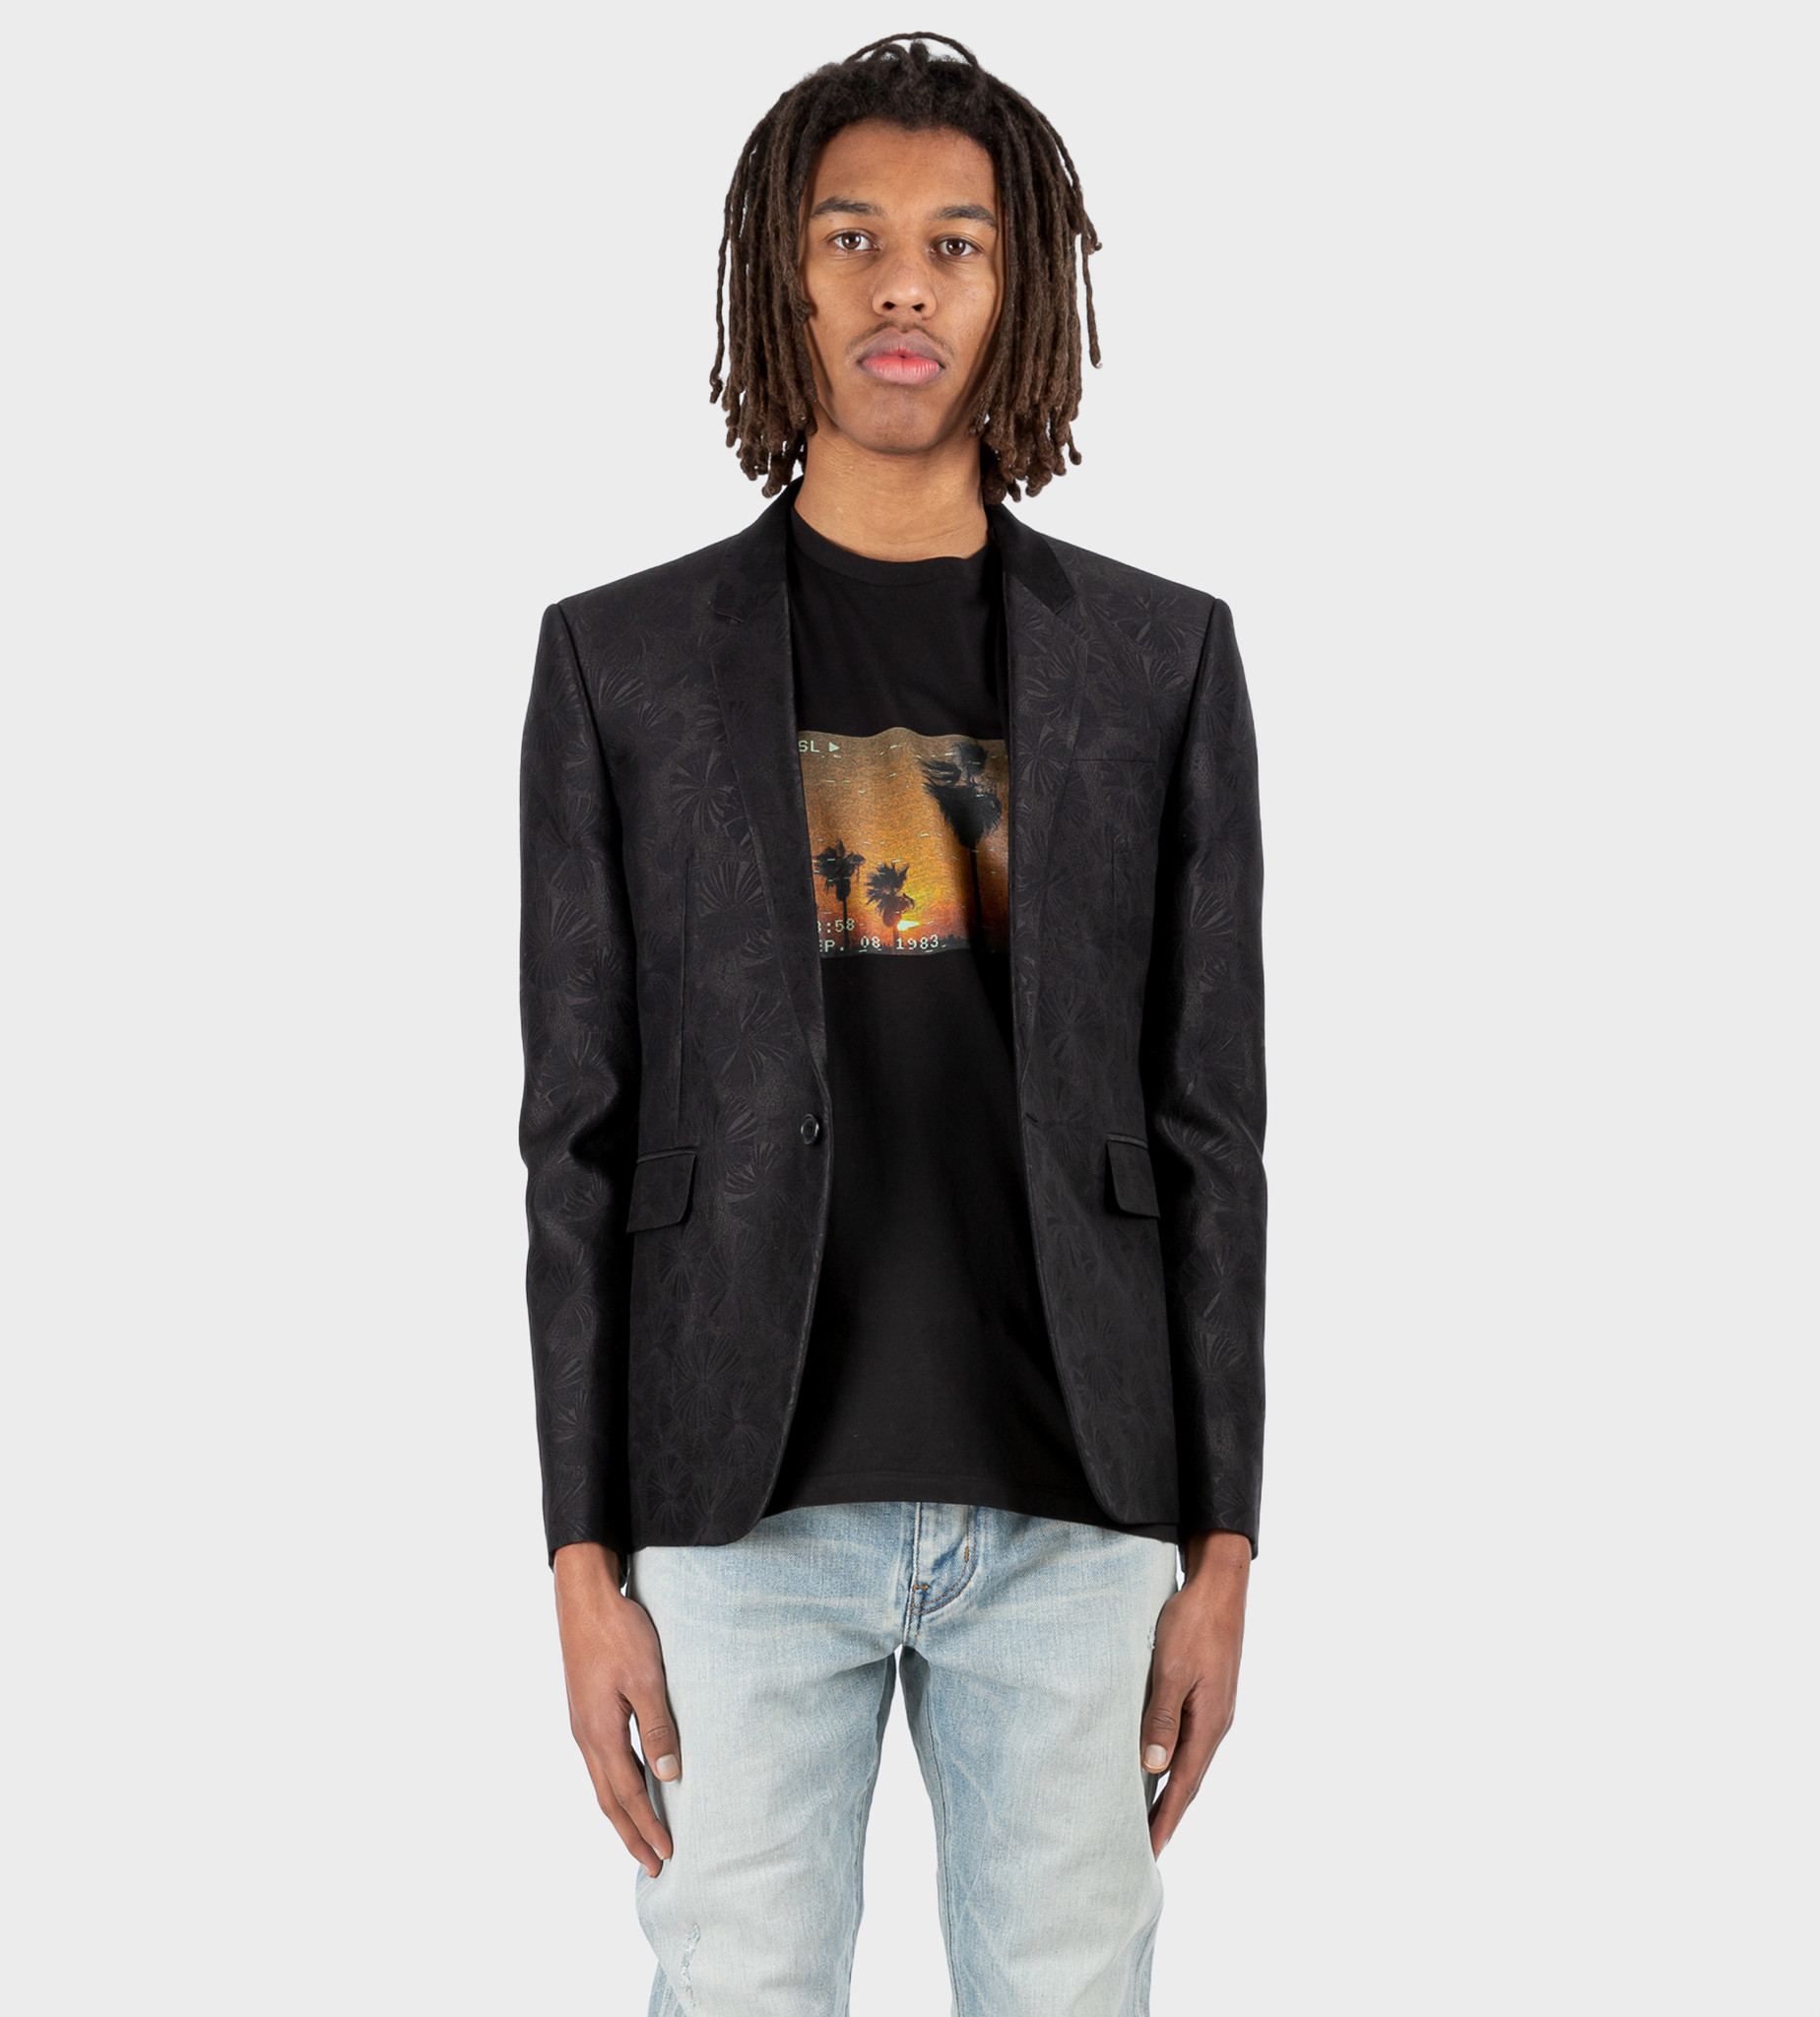 SAINT LAURENT Tailored Jacket in Wool and Silk Parasol Jacquard